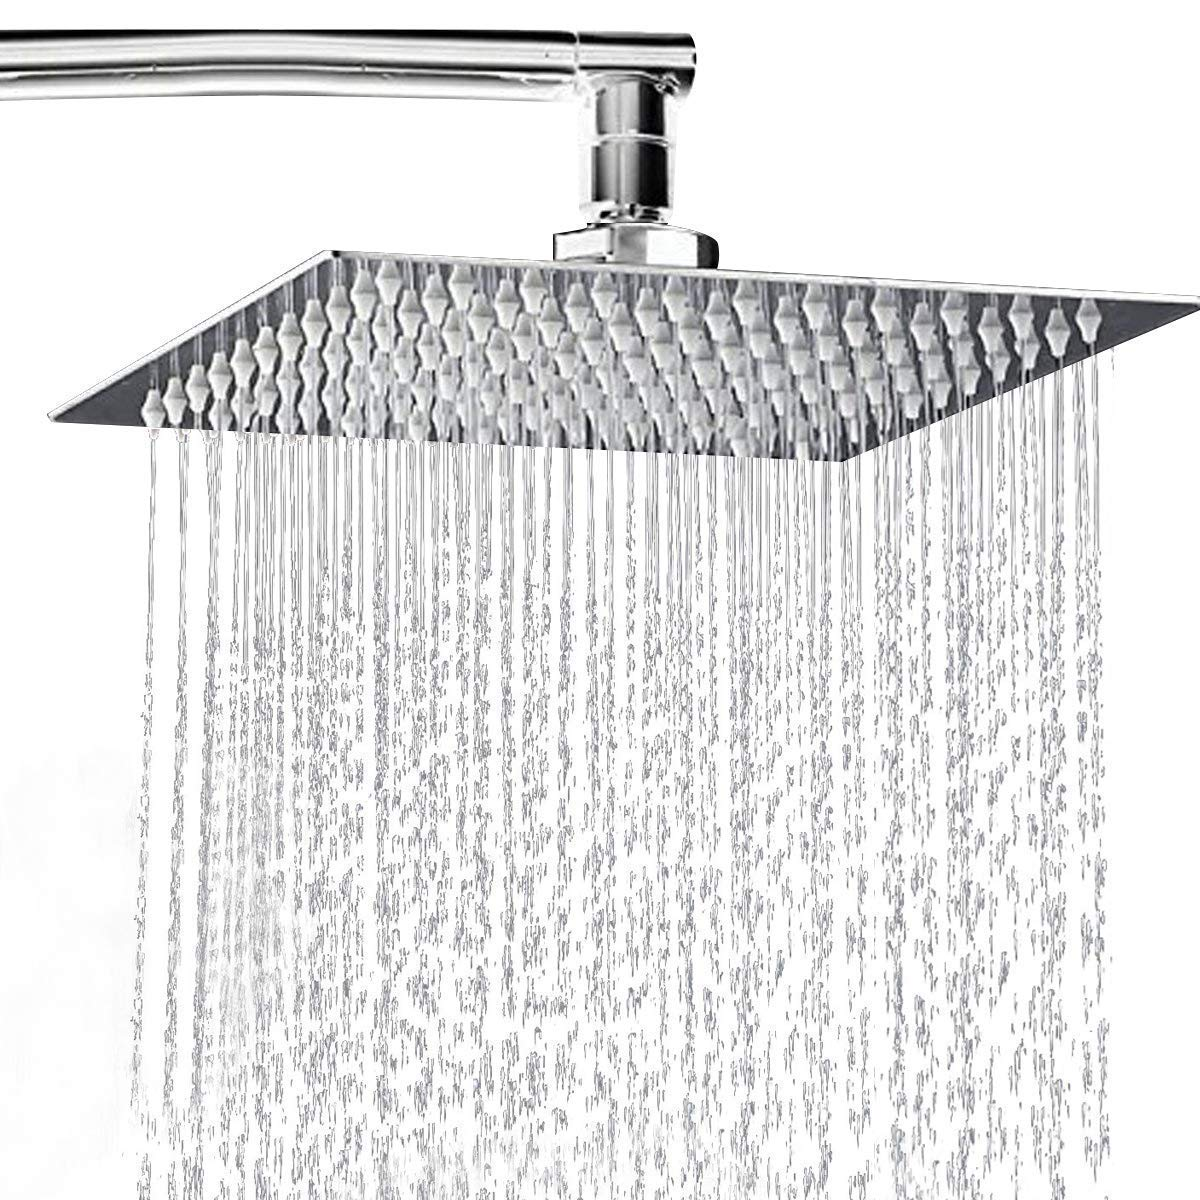 6 Inch Stainless Steel Ultra-thin Waterfall Shower Heads Square High Pressure Rainfall Shower Head Rain Showerheads Home Improvement silver